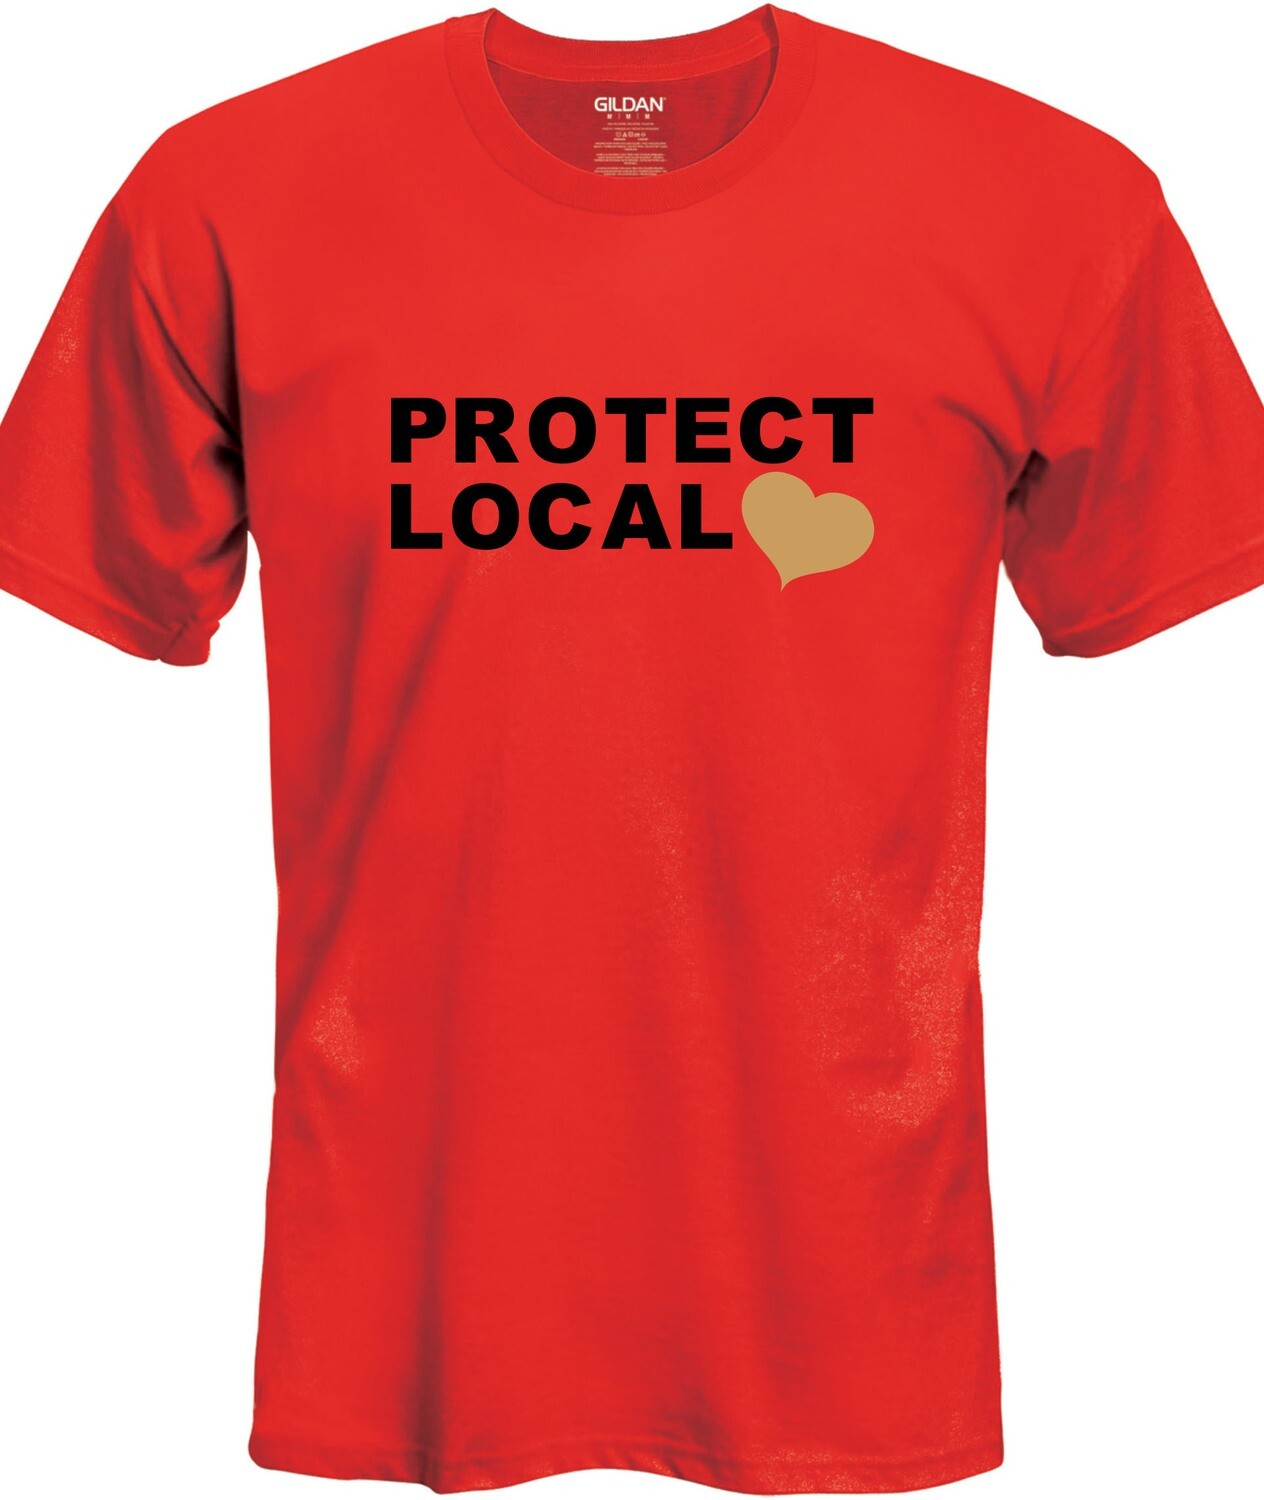 Protect Local T-Shirt (Black & Gold on Red)